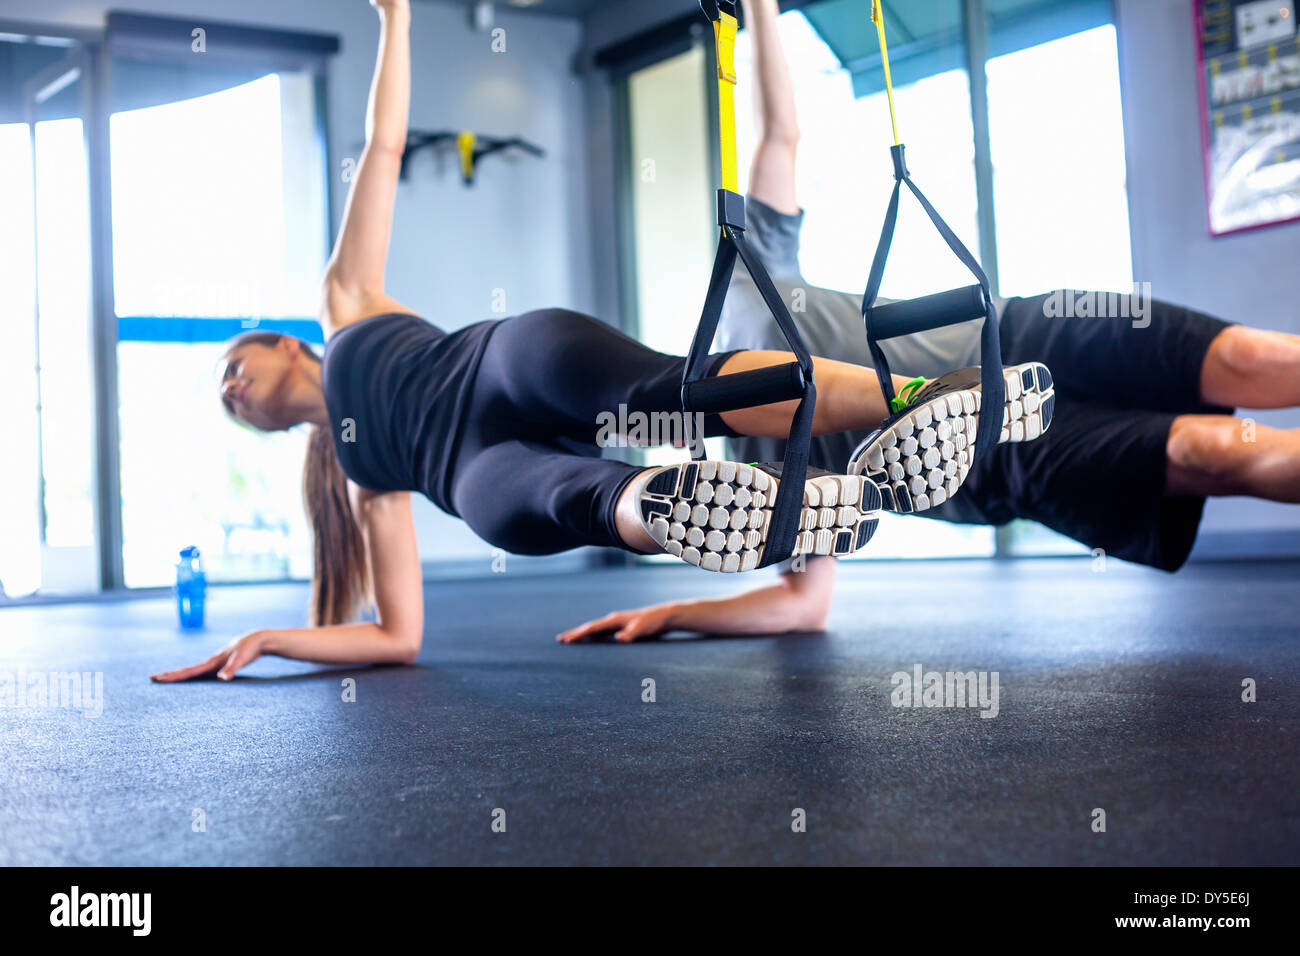 Couple doing side plank exercise - Stock Image